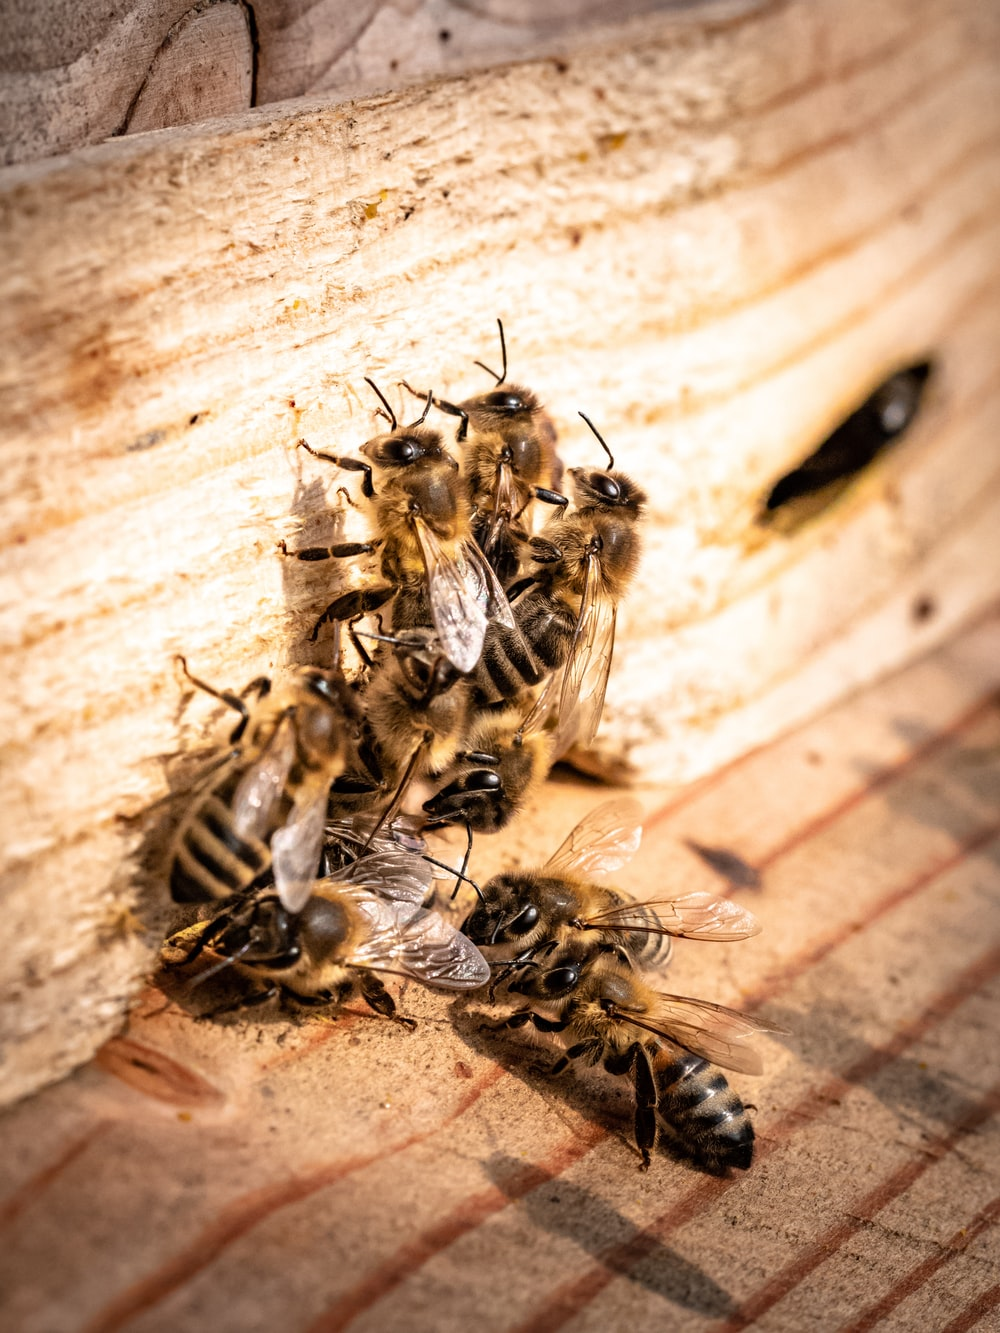 group of black and yellow bees